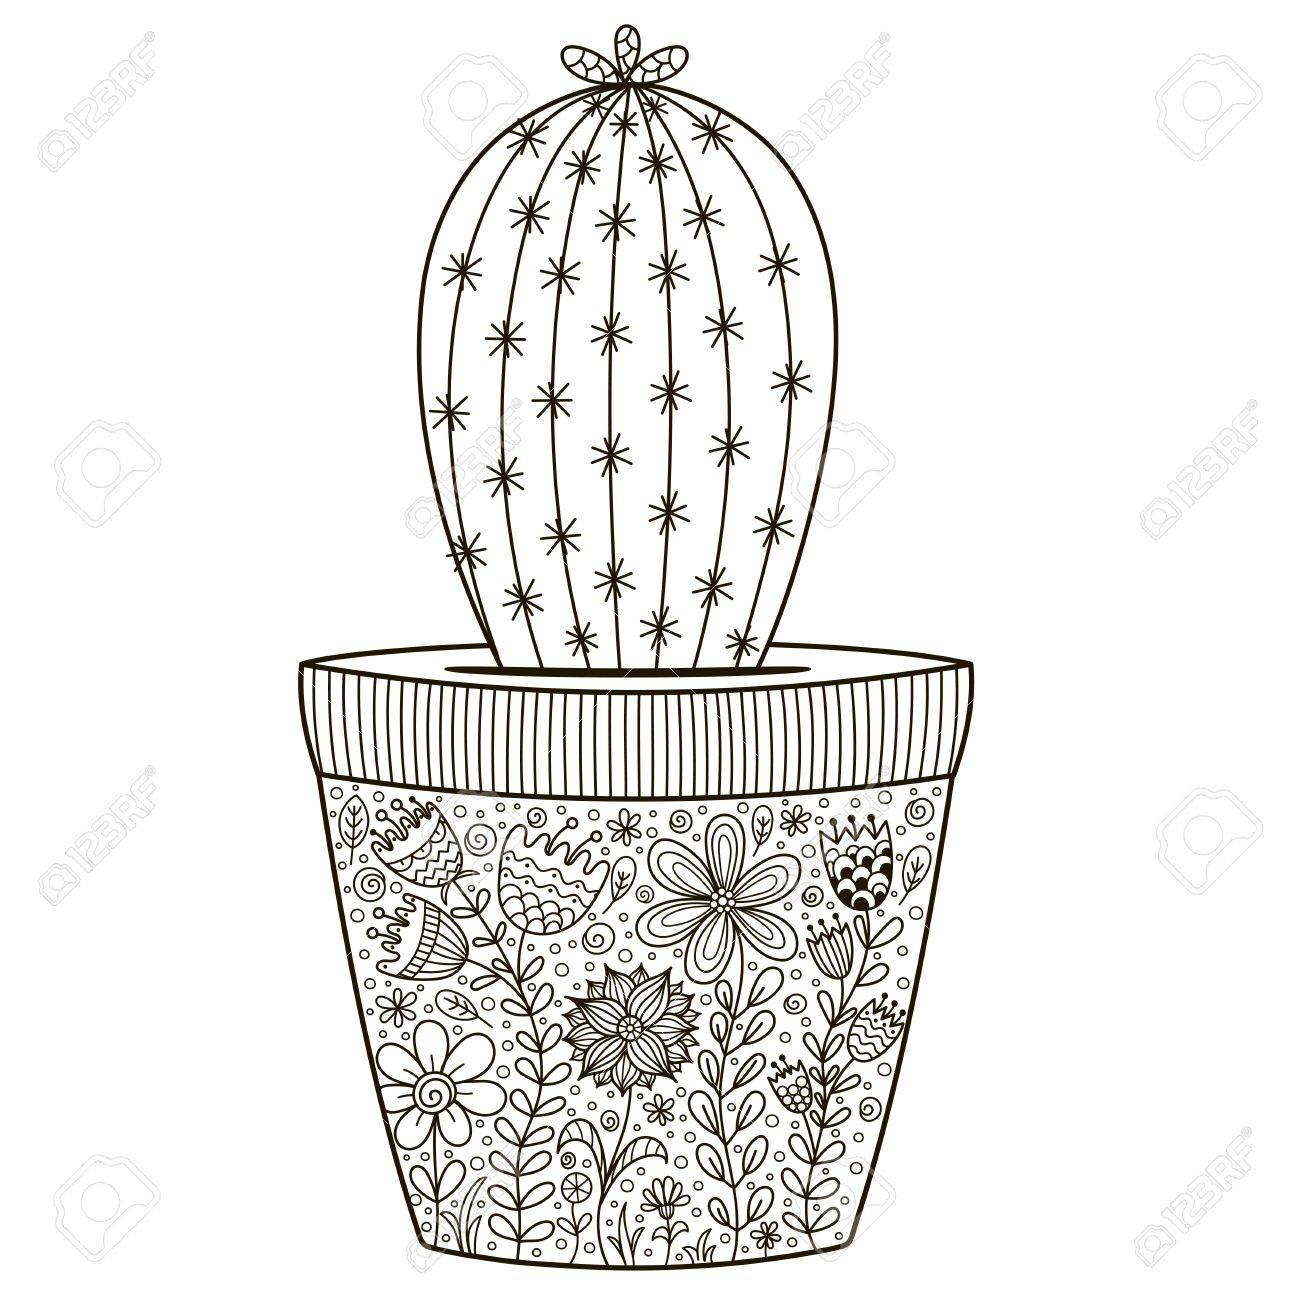 Doodle Cactus In The Pot With Floral Ornament For Coloring Book ...